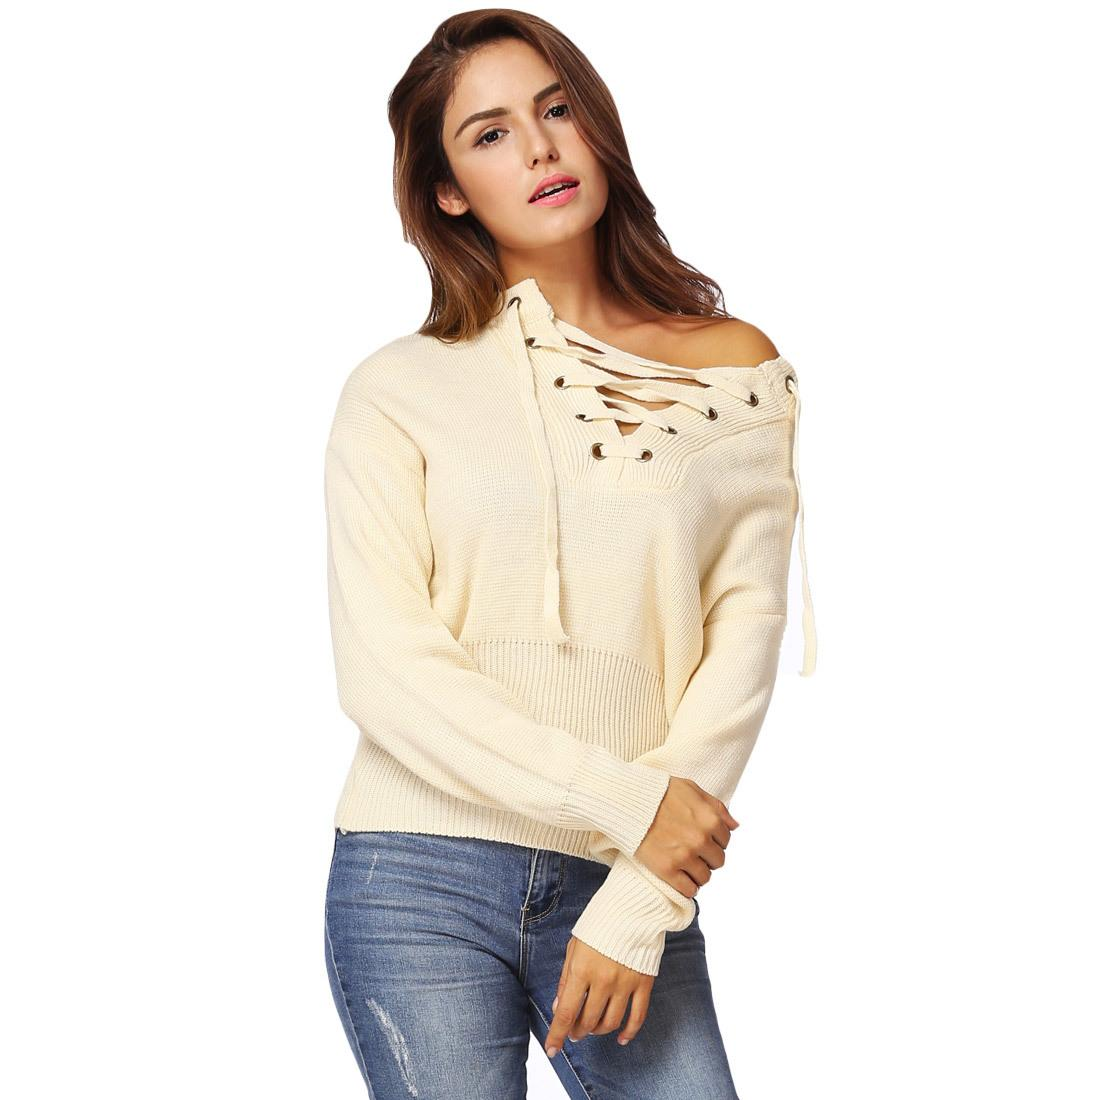 85398ffef71 2019 2017 Winter Women Lace Up Knitted Sweater V Neck Long Sleeve Womens  Clothing Ribbed Cuffs Hem Warm Pullover Autumn Warm Knitwear From  Qinfeng07